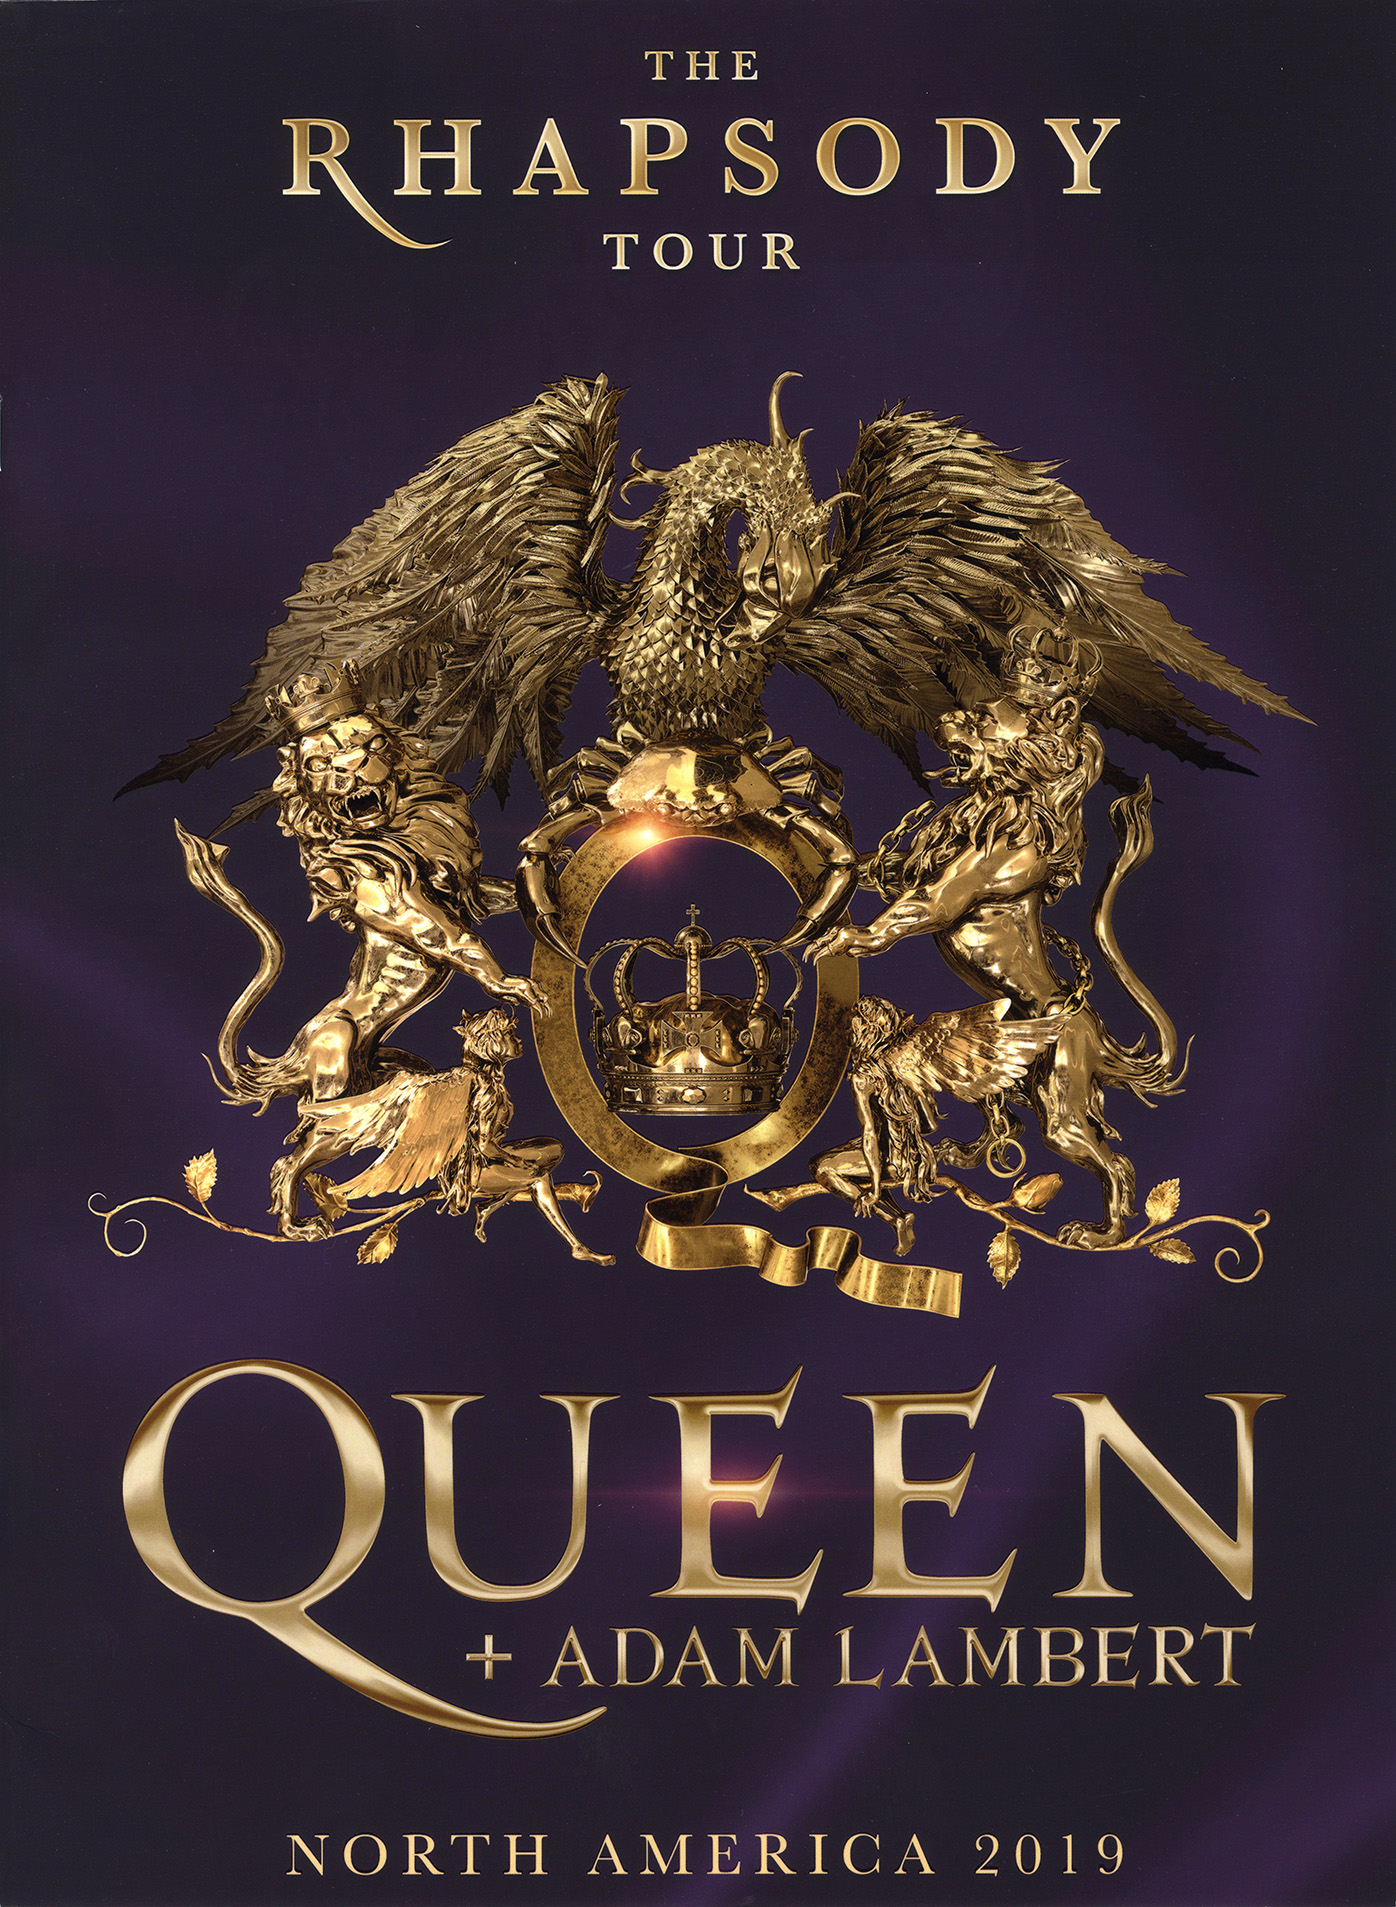 Queen + Adam Lambert - North America 2019